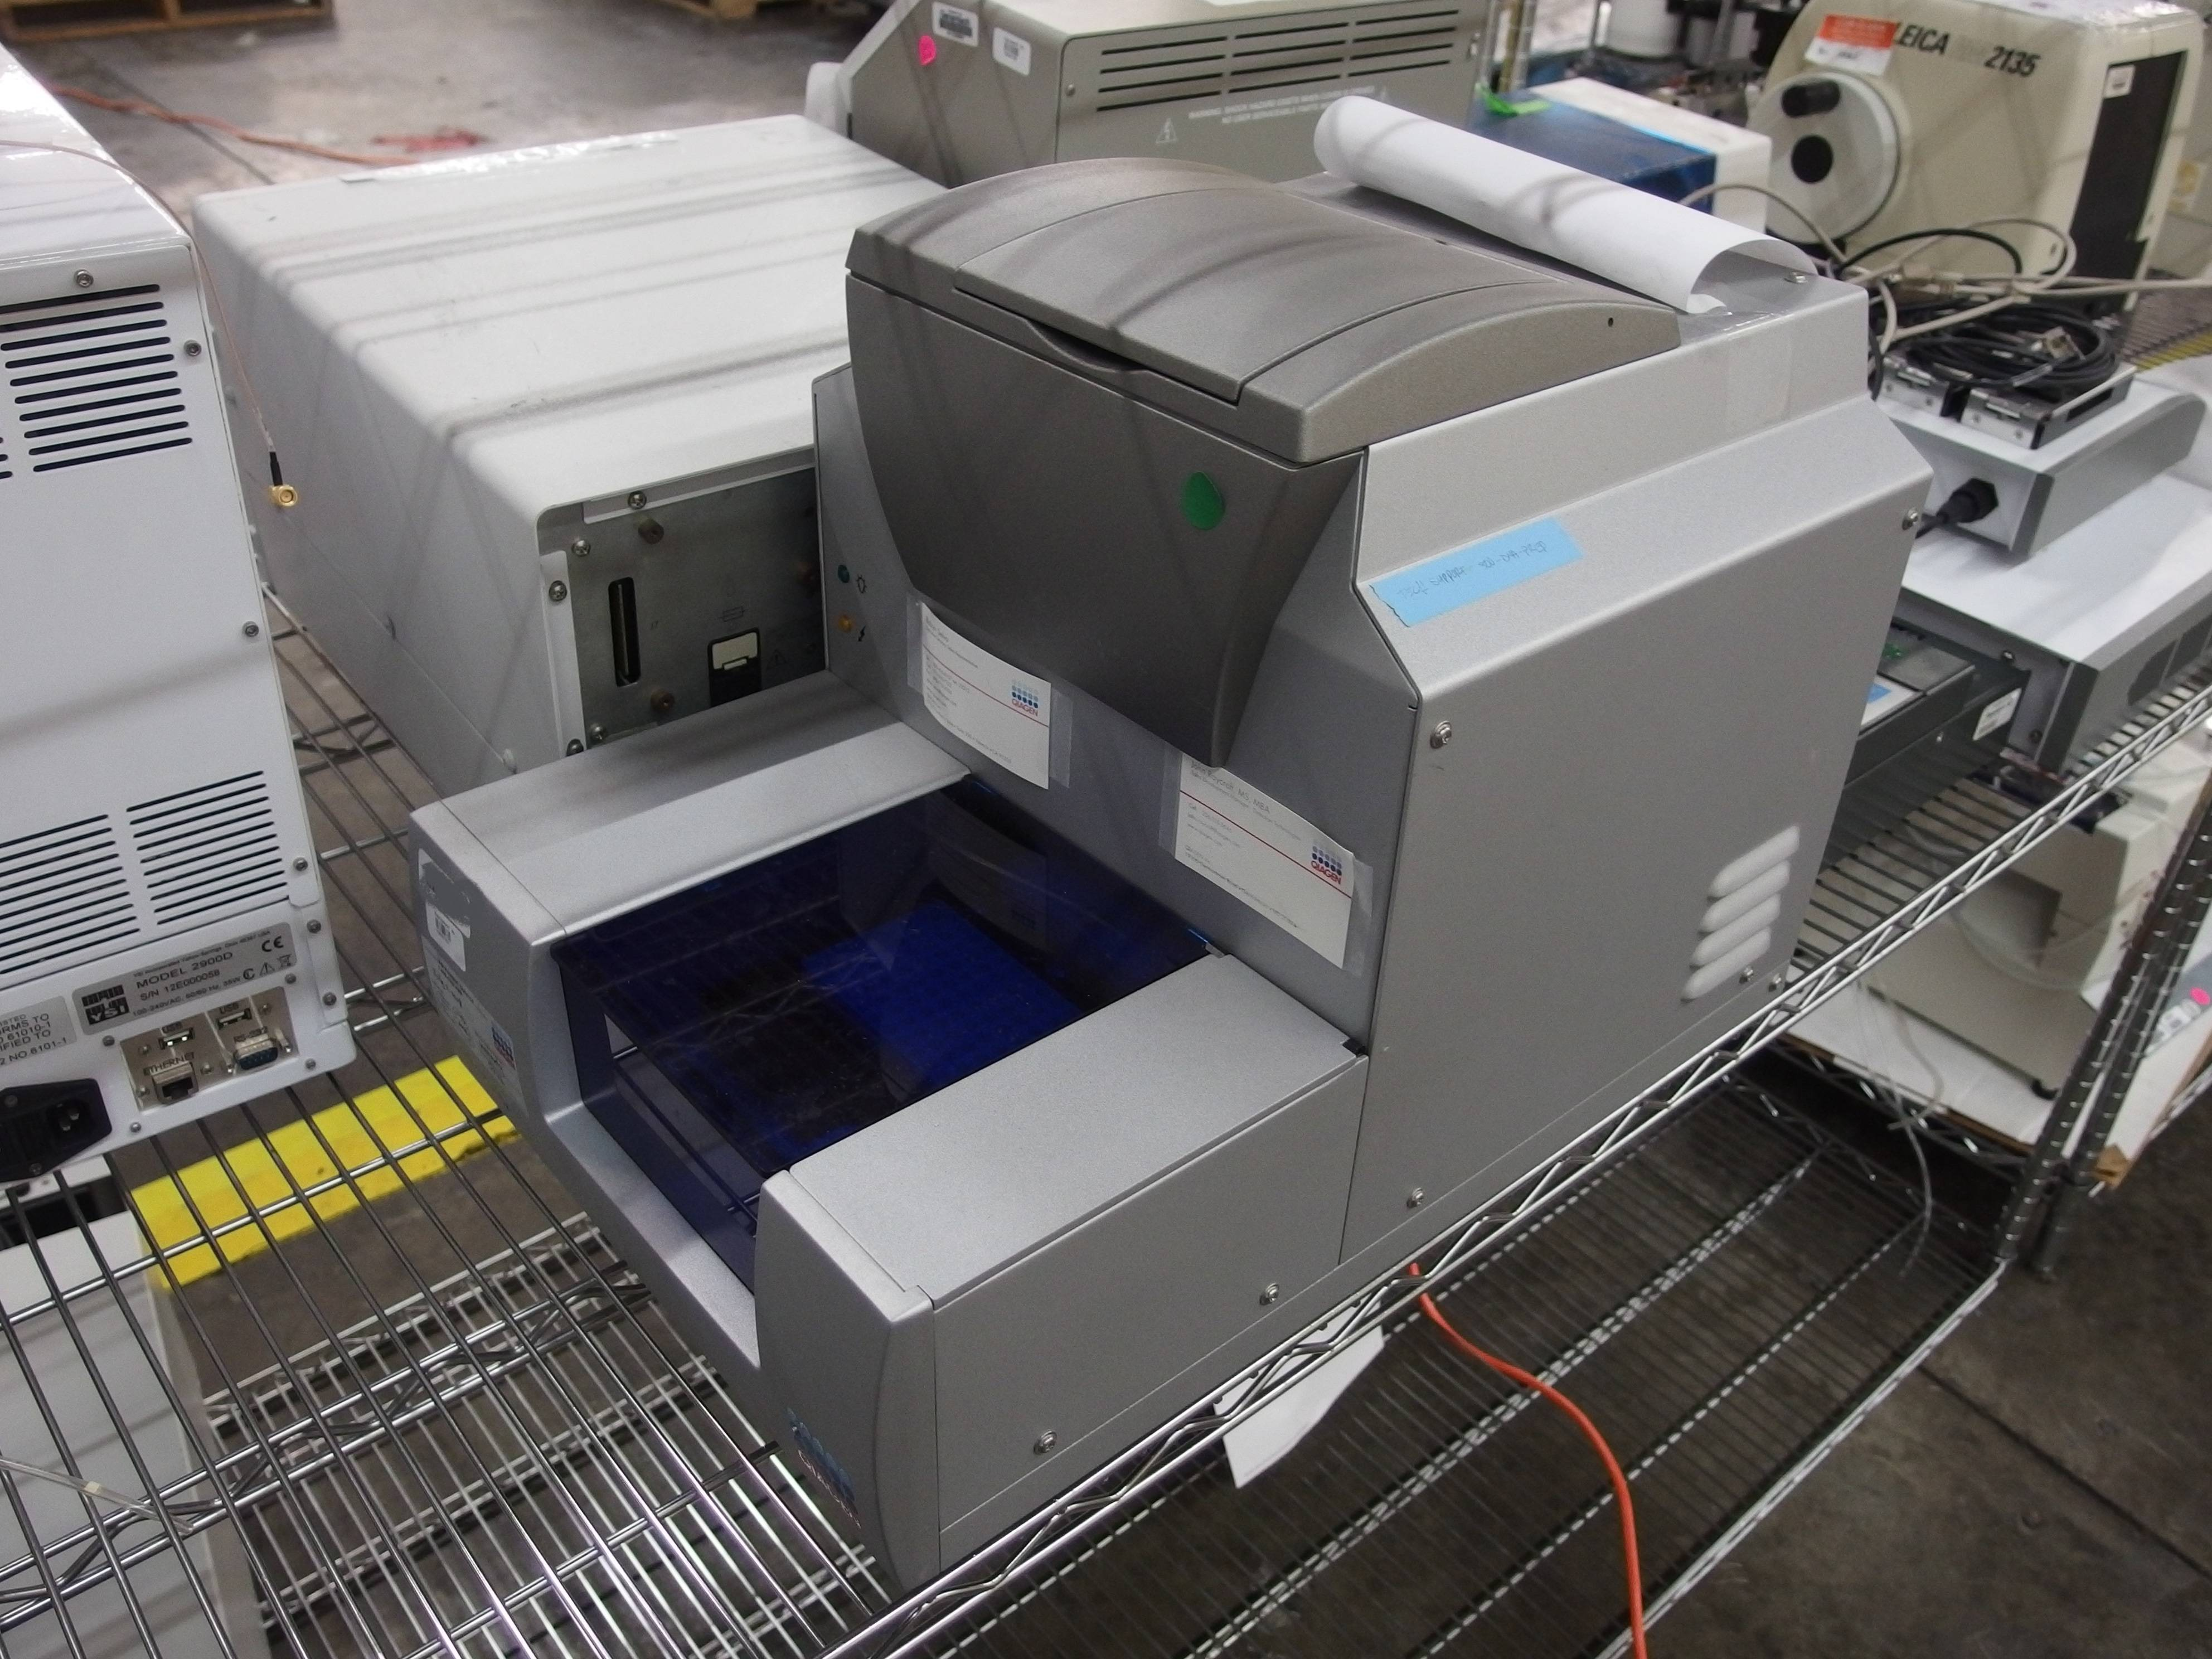 Qiagen QIAxcel Automated DNA Electrophoresis System